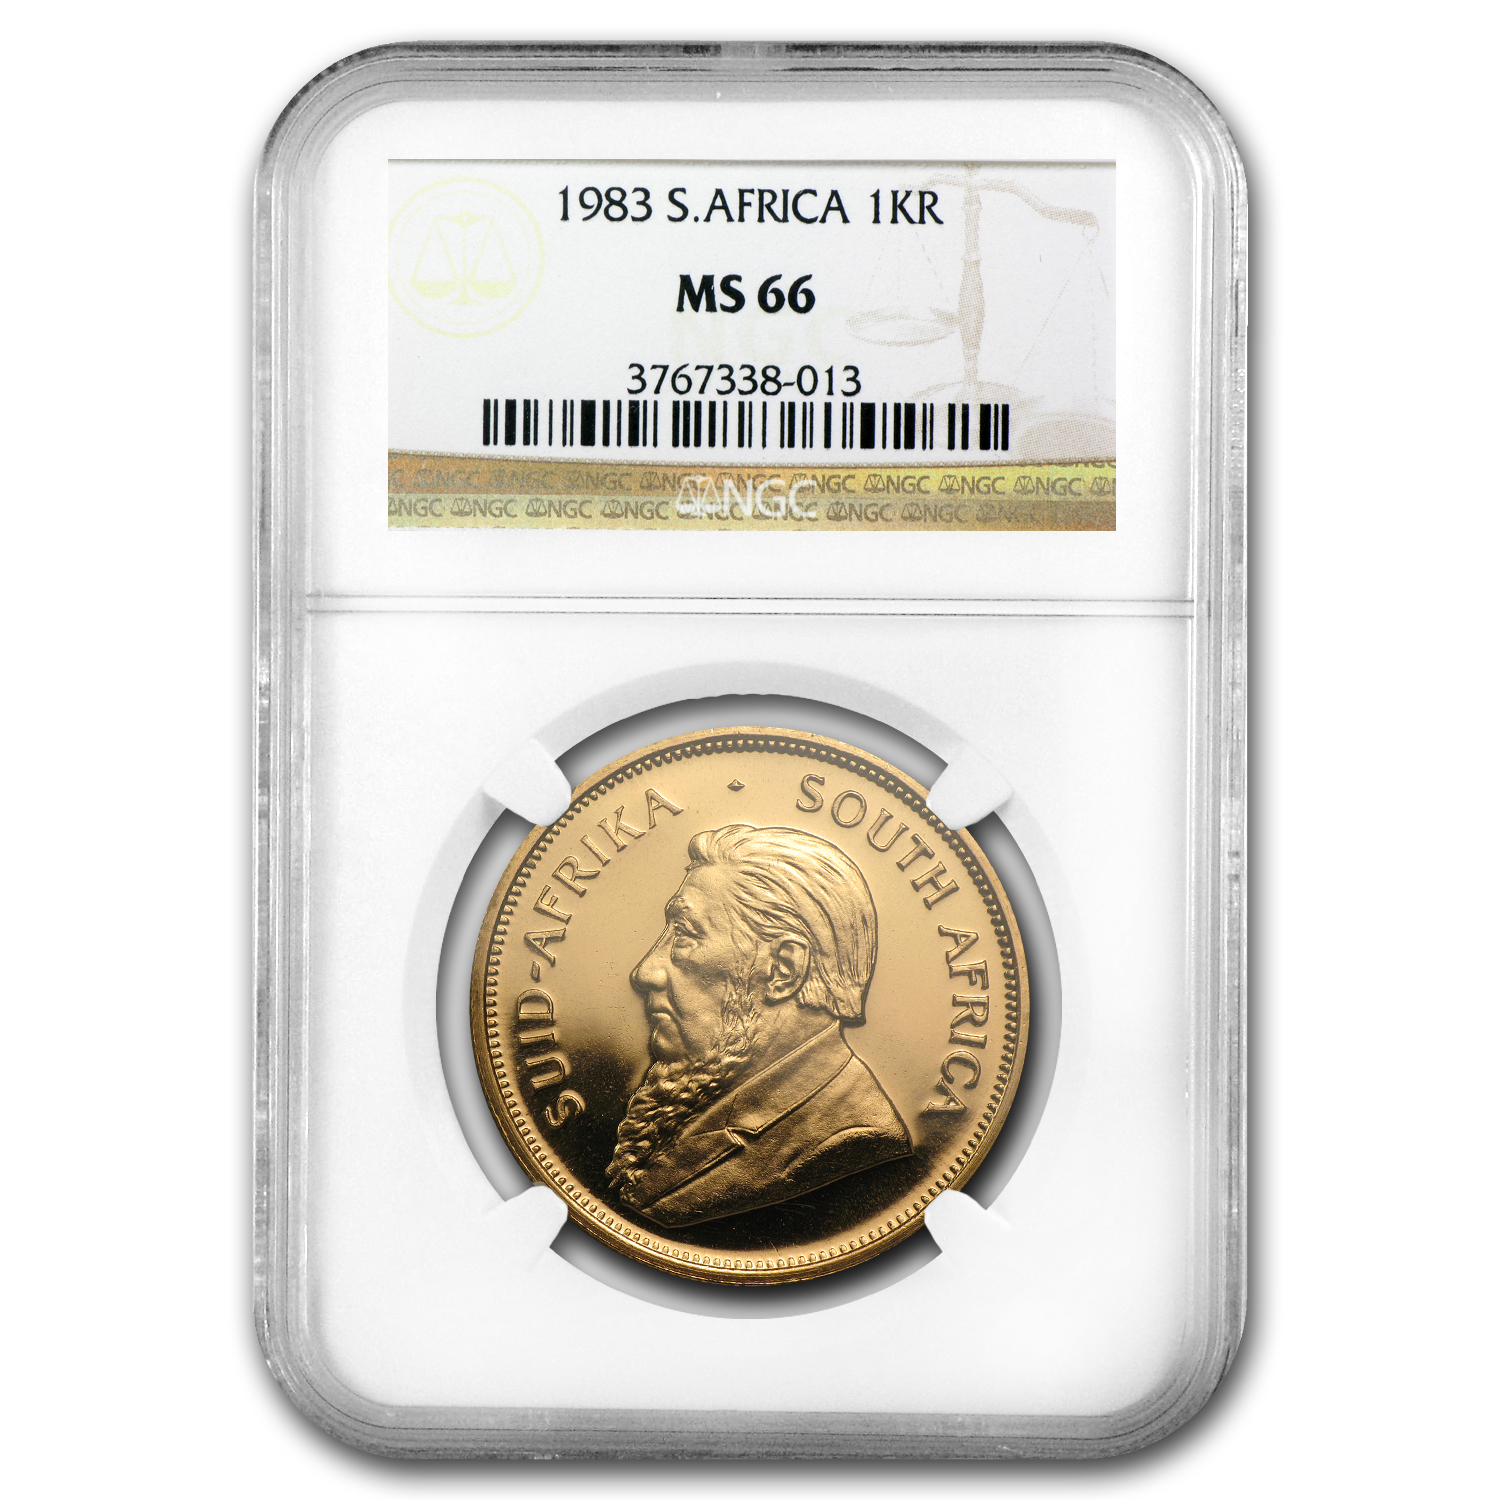 1983 1 oz Gold South African Krugerrand MS-66 NGC